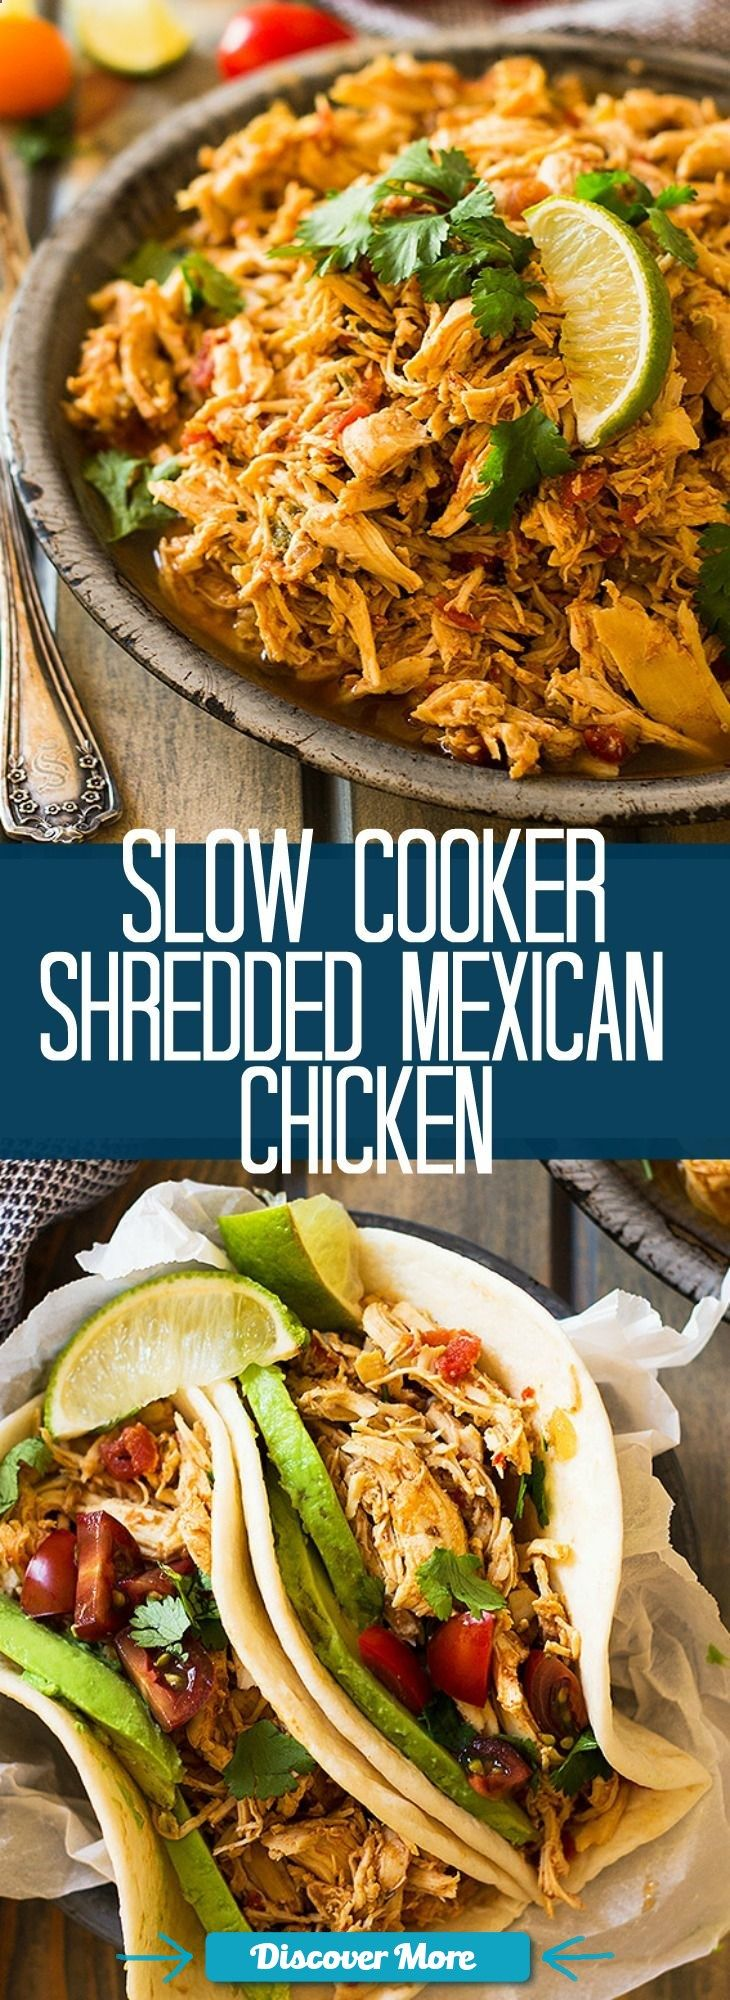 This easy Slow Cooker Shredded Mexican Chicken is a great base recipe to use for tacos, enchiladas, nachos, burritos, salads or just serve it over rice. | www.countrysidecr... #slowcooker #slowcook #slowcookerrecipes #slowcookerchicken